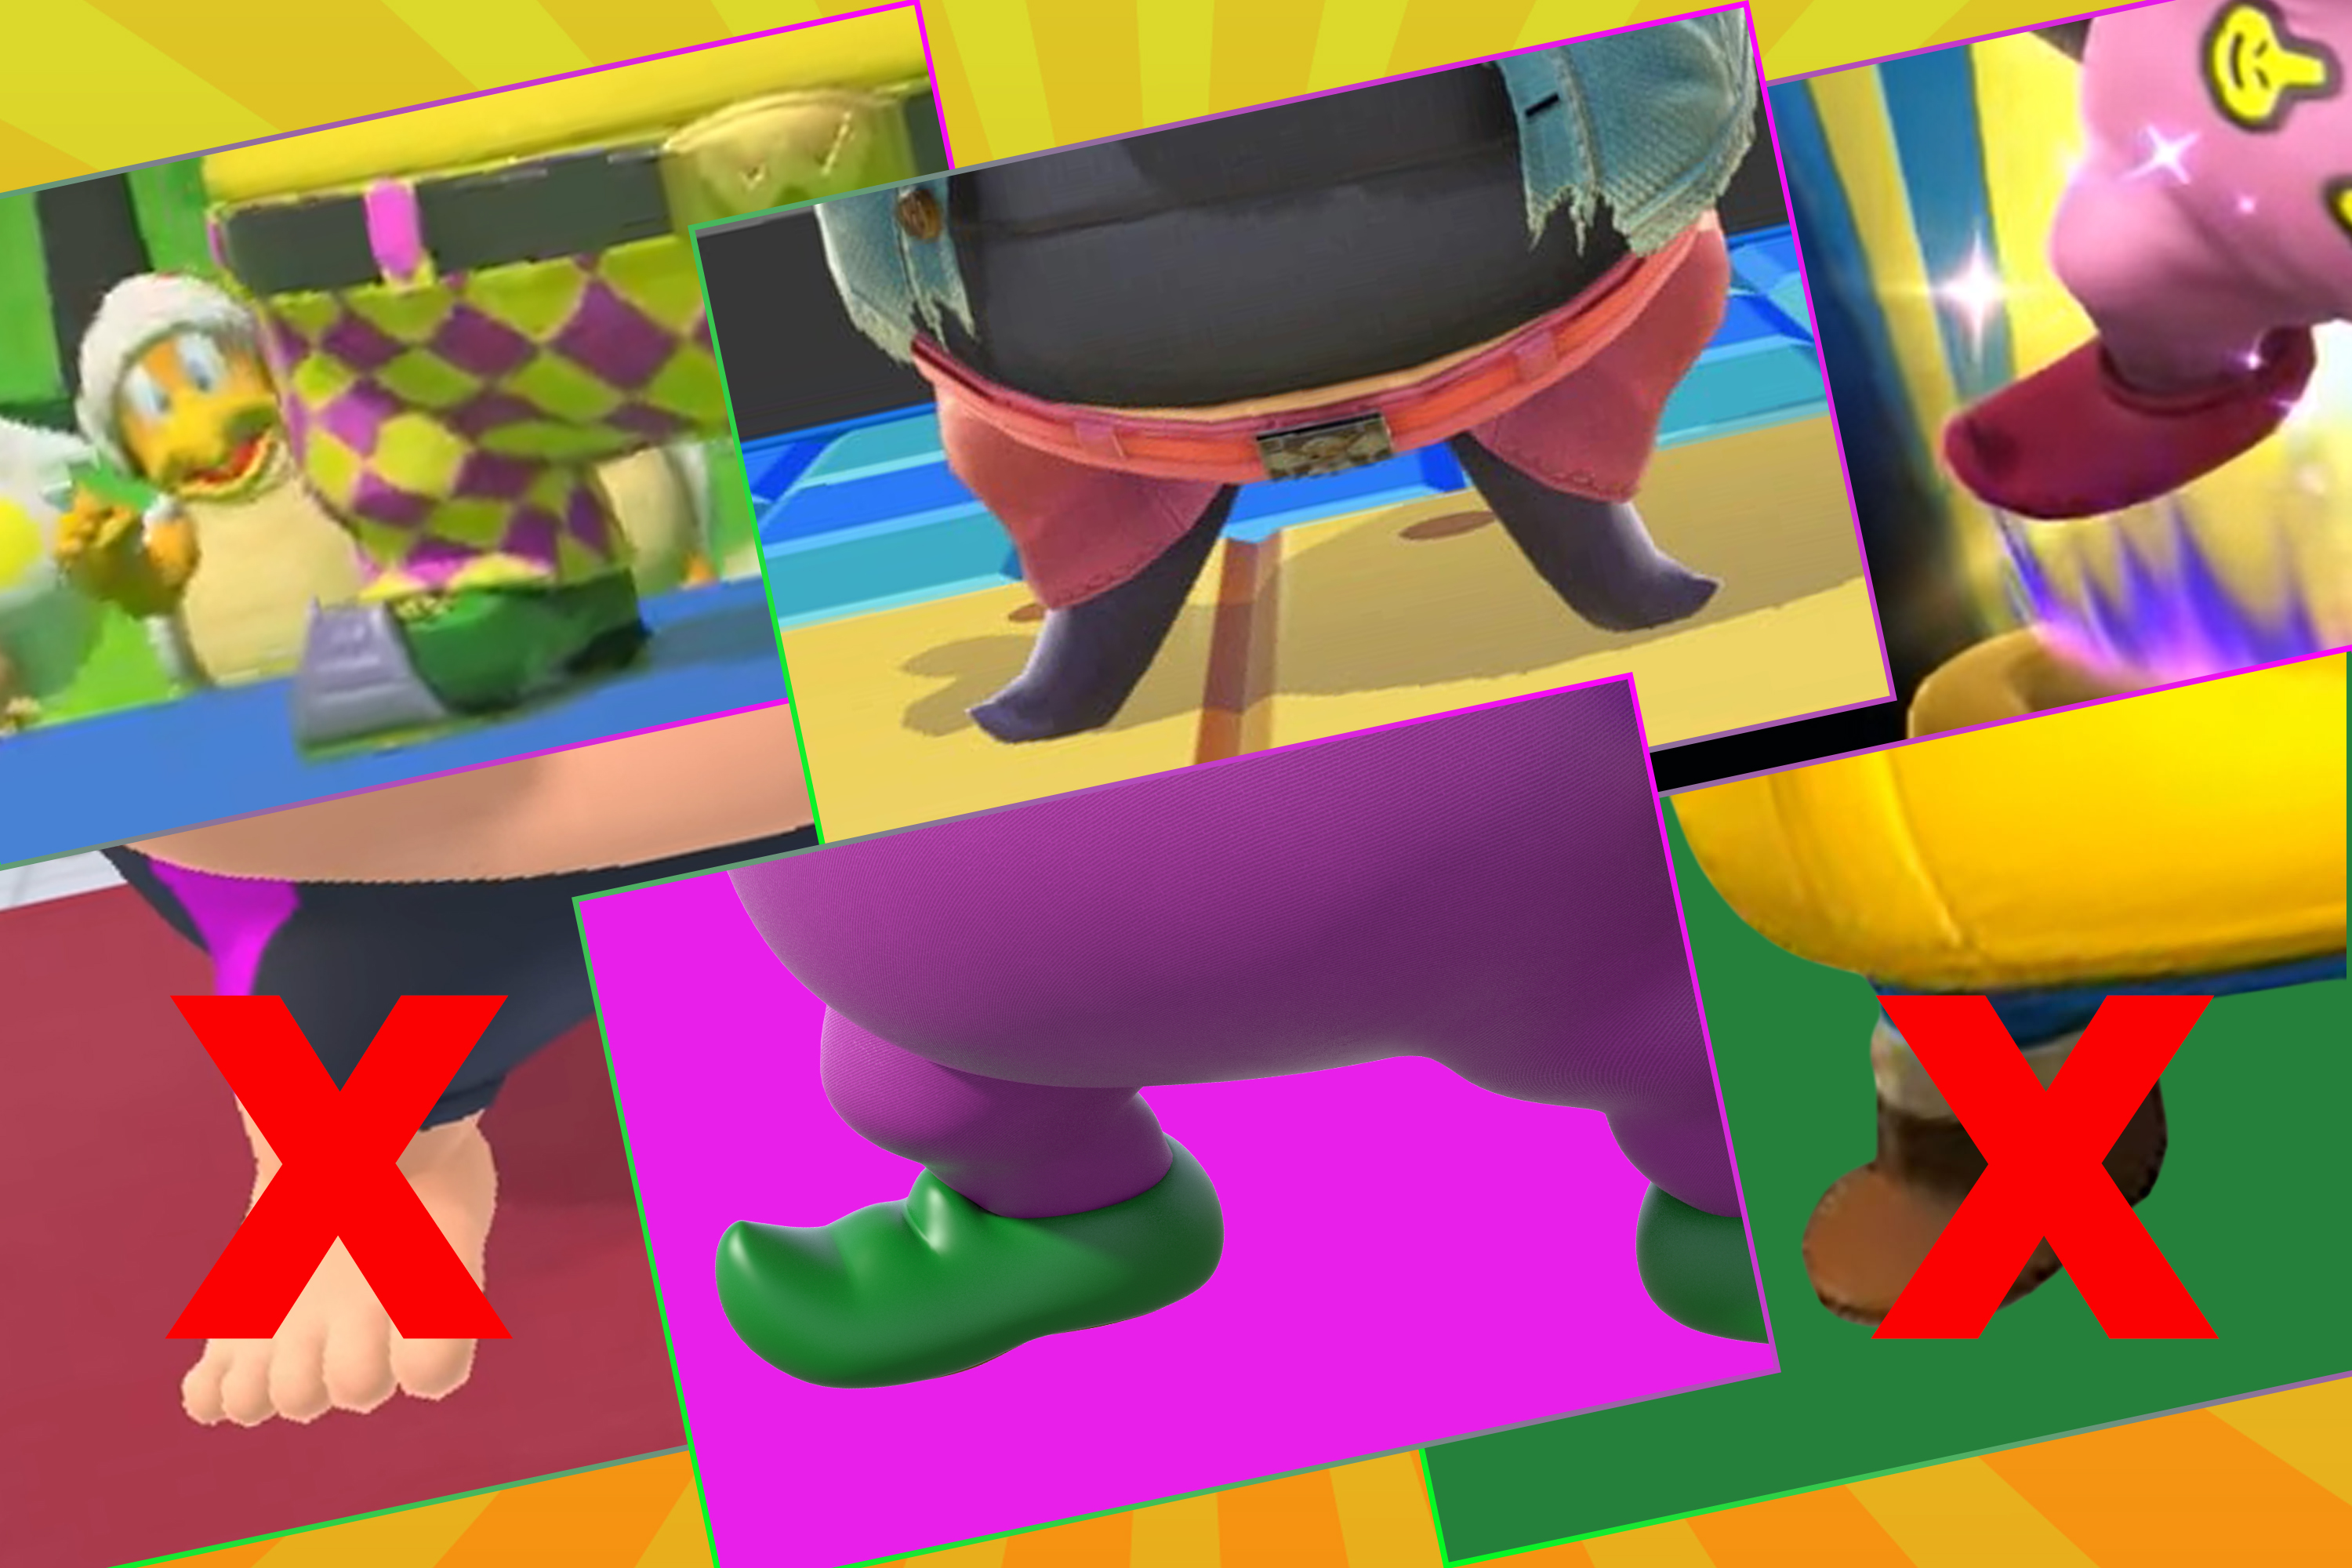 Wario: Good shoes and no shoes